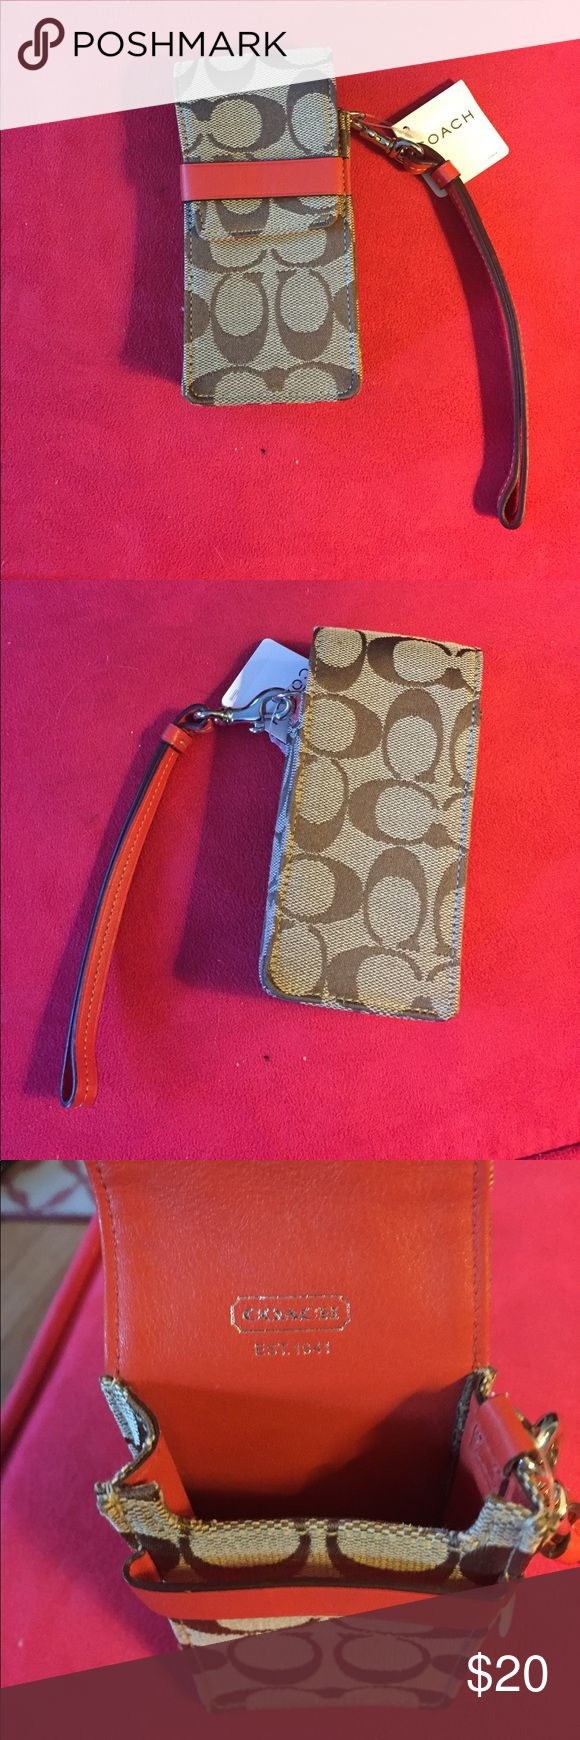 BRAND NEW COACH CELL PHONE CARRIER  FITS IPHONE6 NWT coach phone carrier. Fits an iPhone 6. Orange and light brown. Coach Bags Clutches & Wristlets